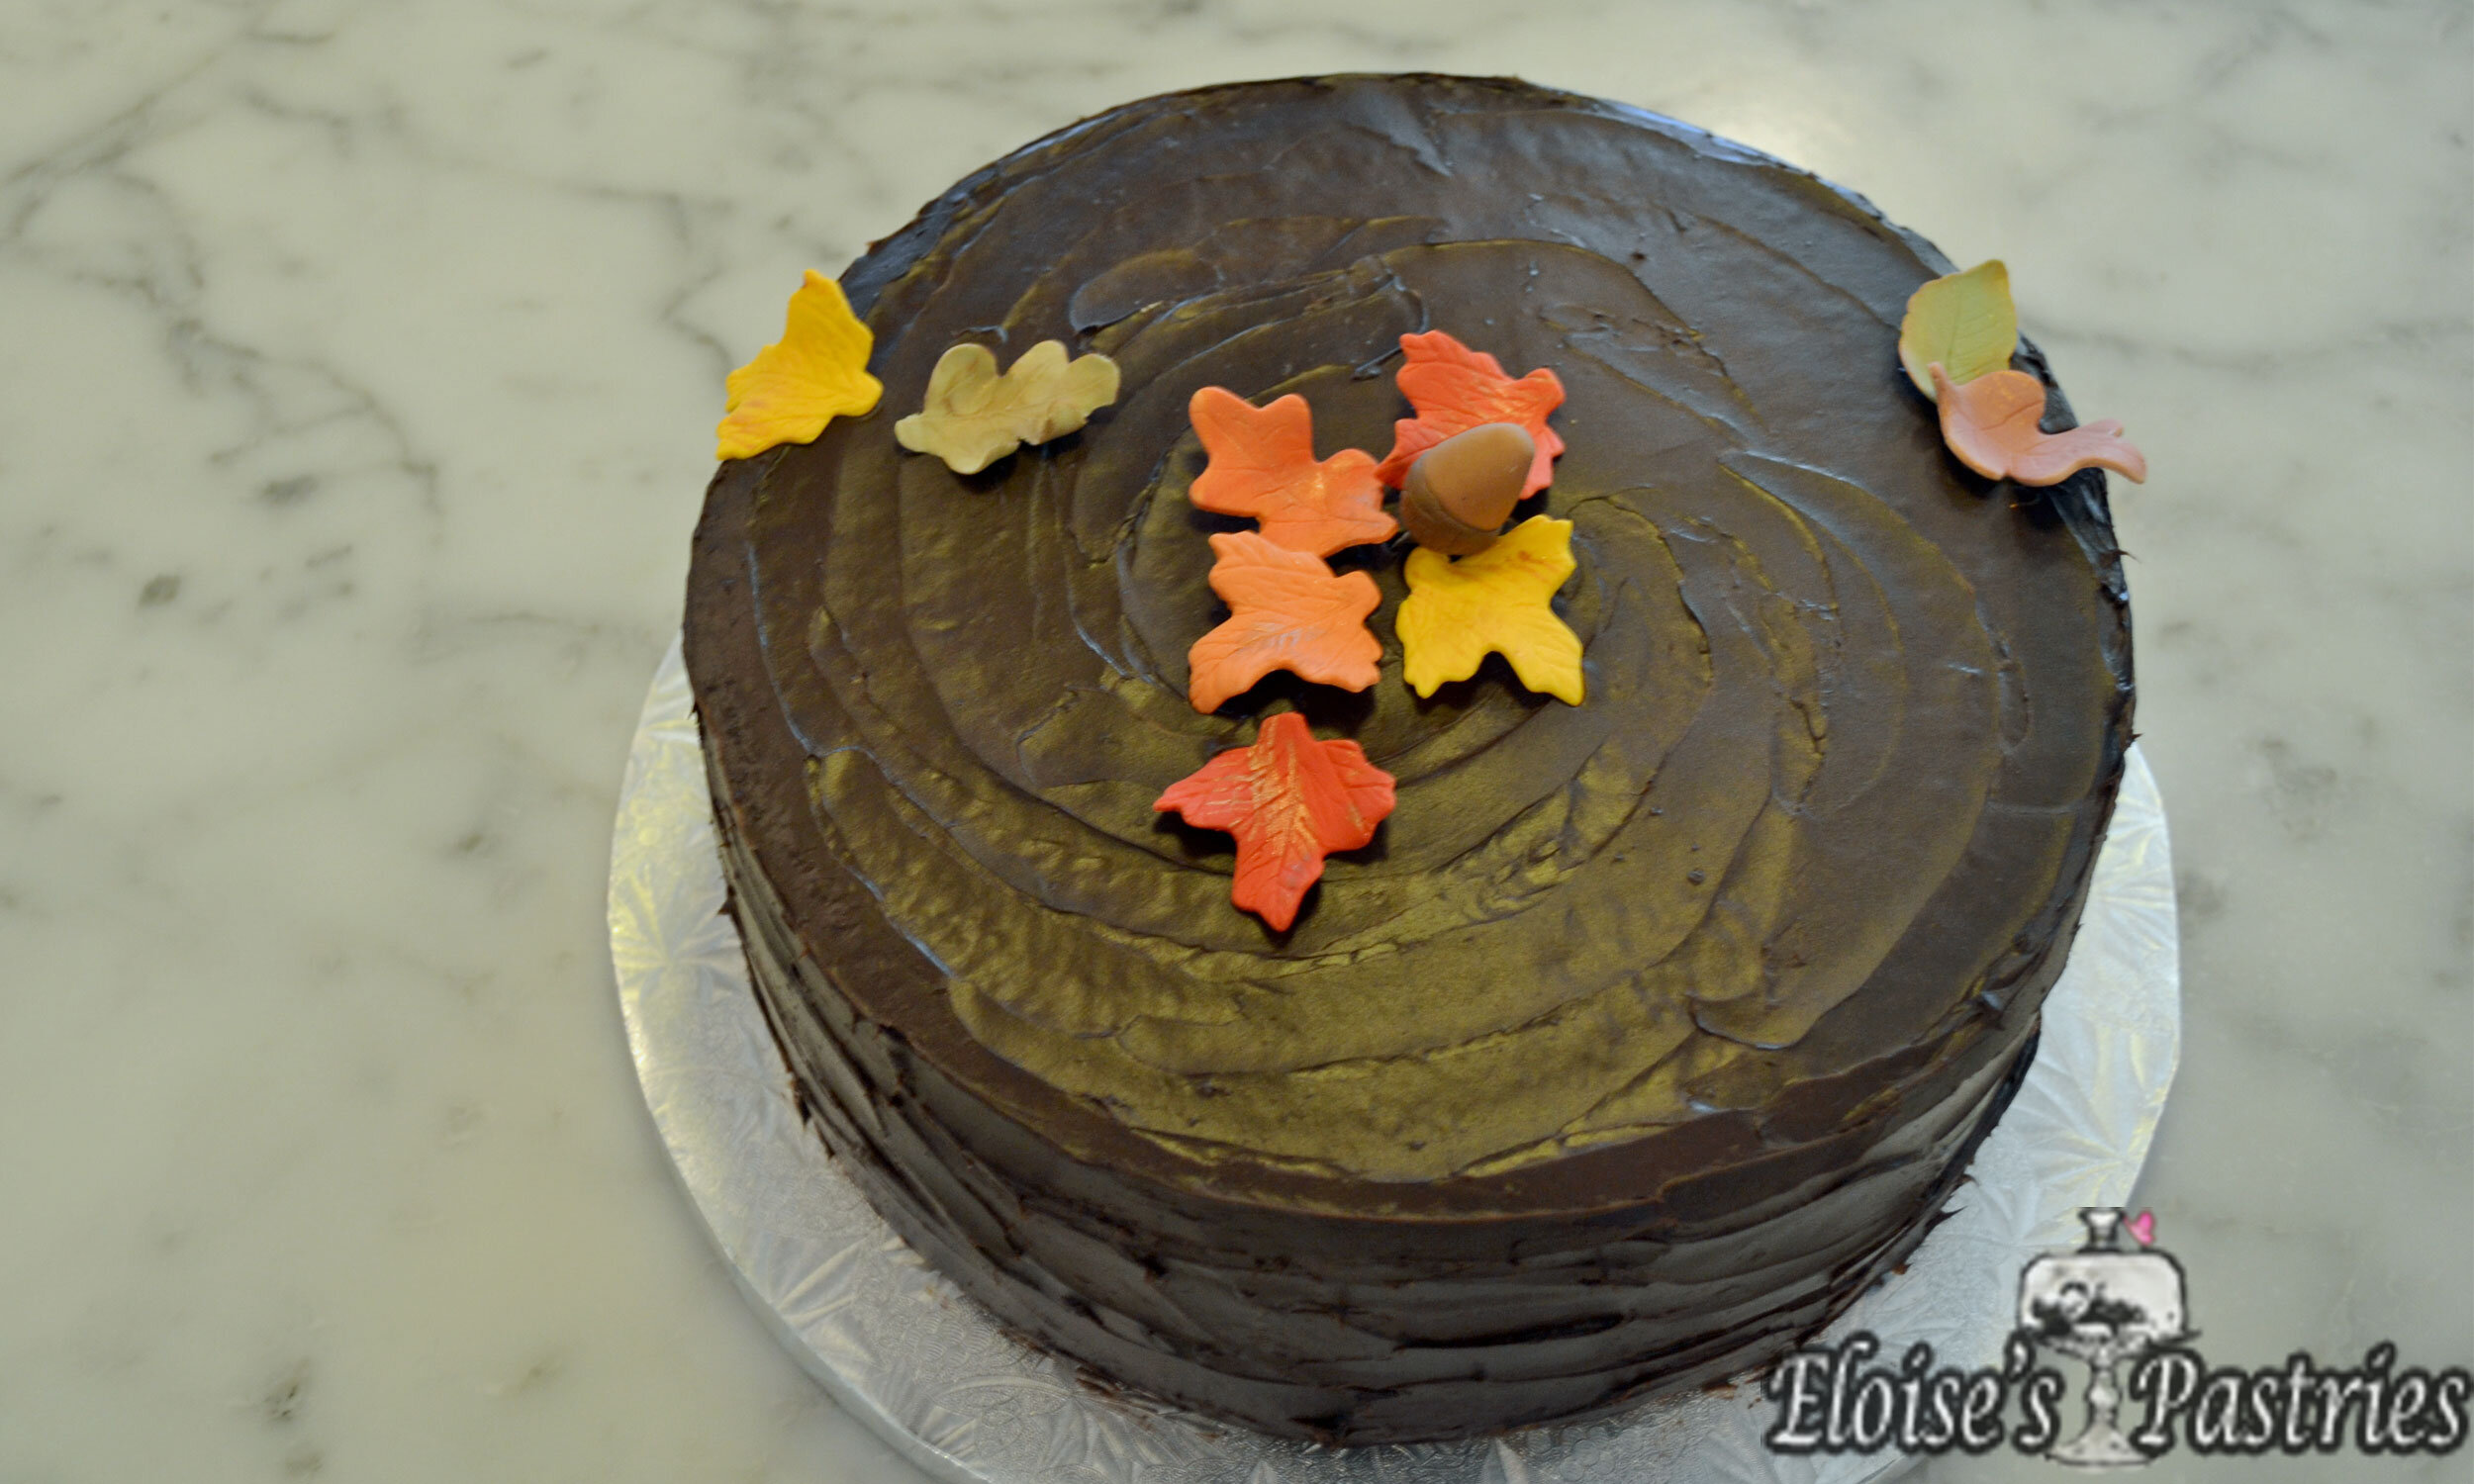 Autumn Cake - Yellow Butter Cake with Maple Mousse Filling, Chocolate Buttercream Exterior